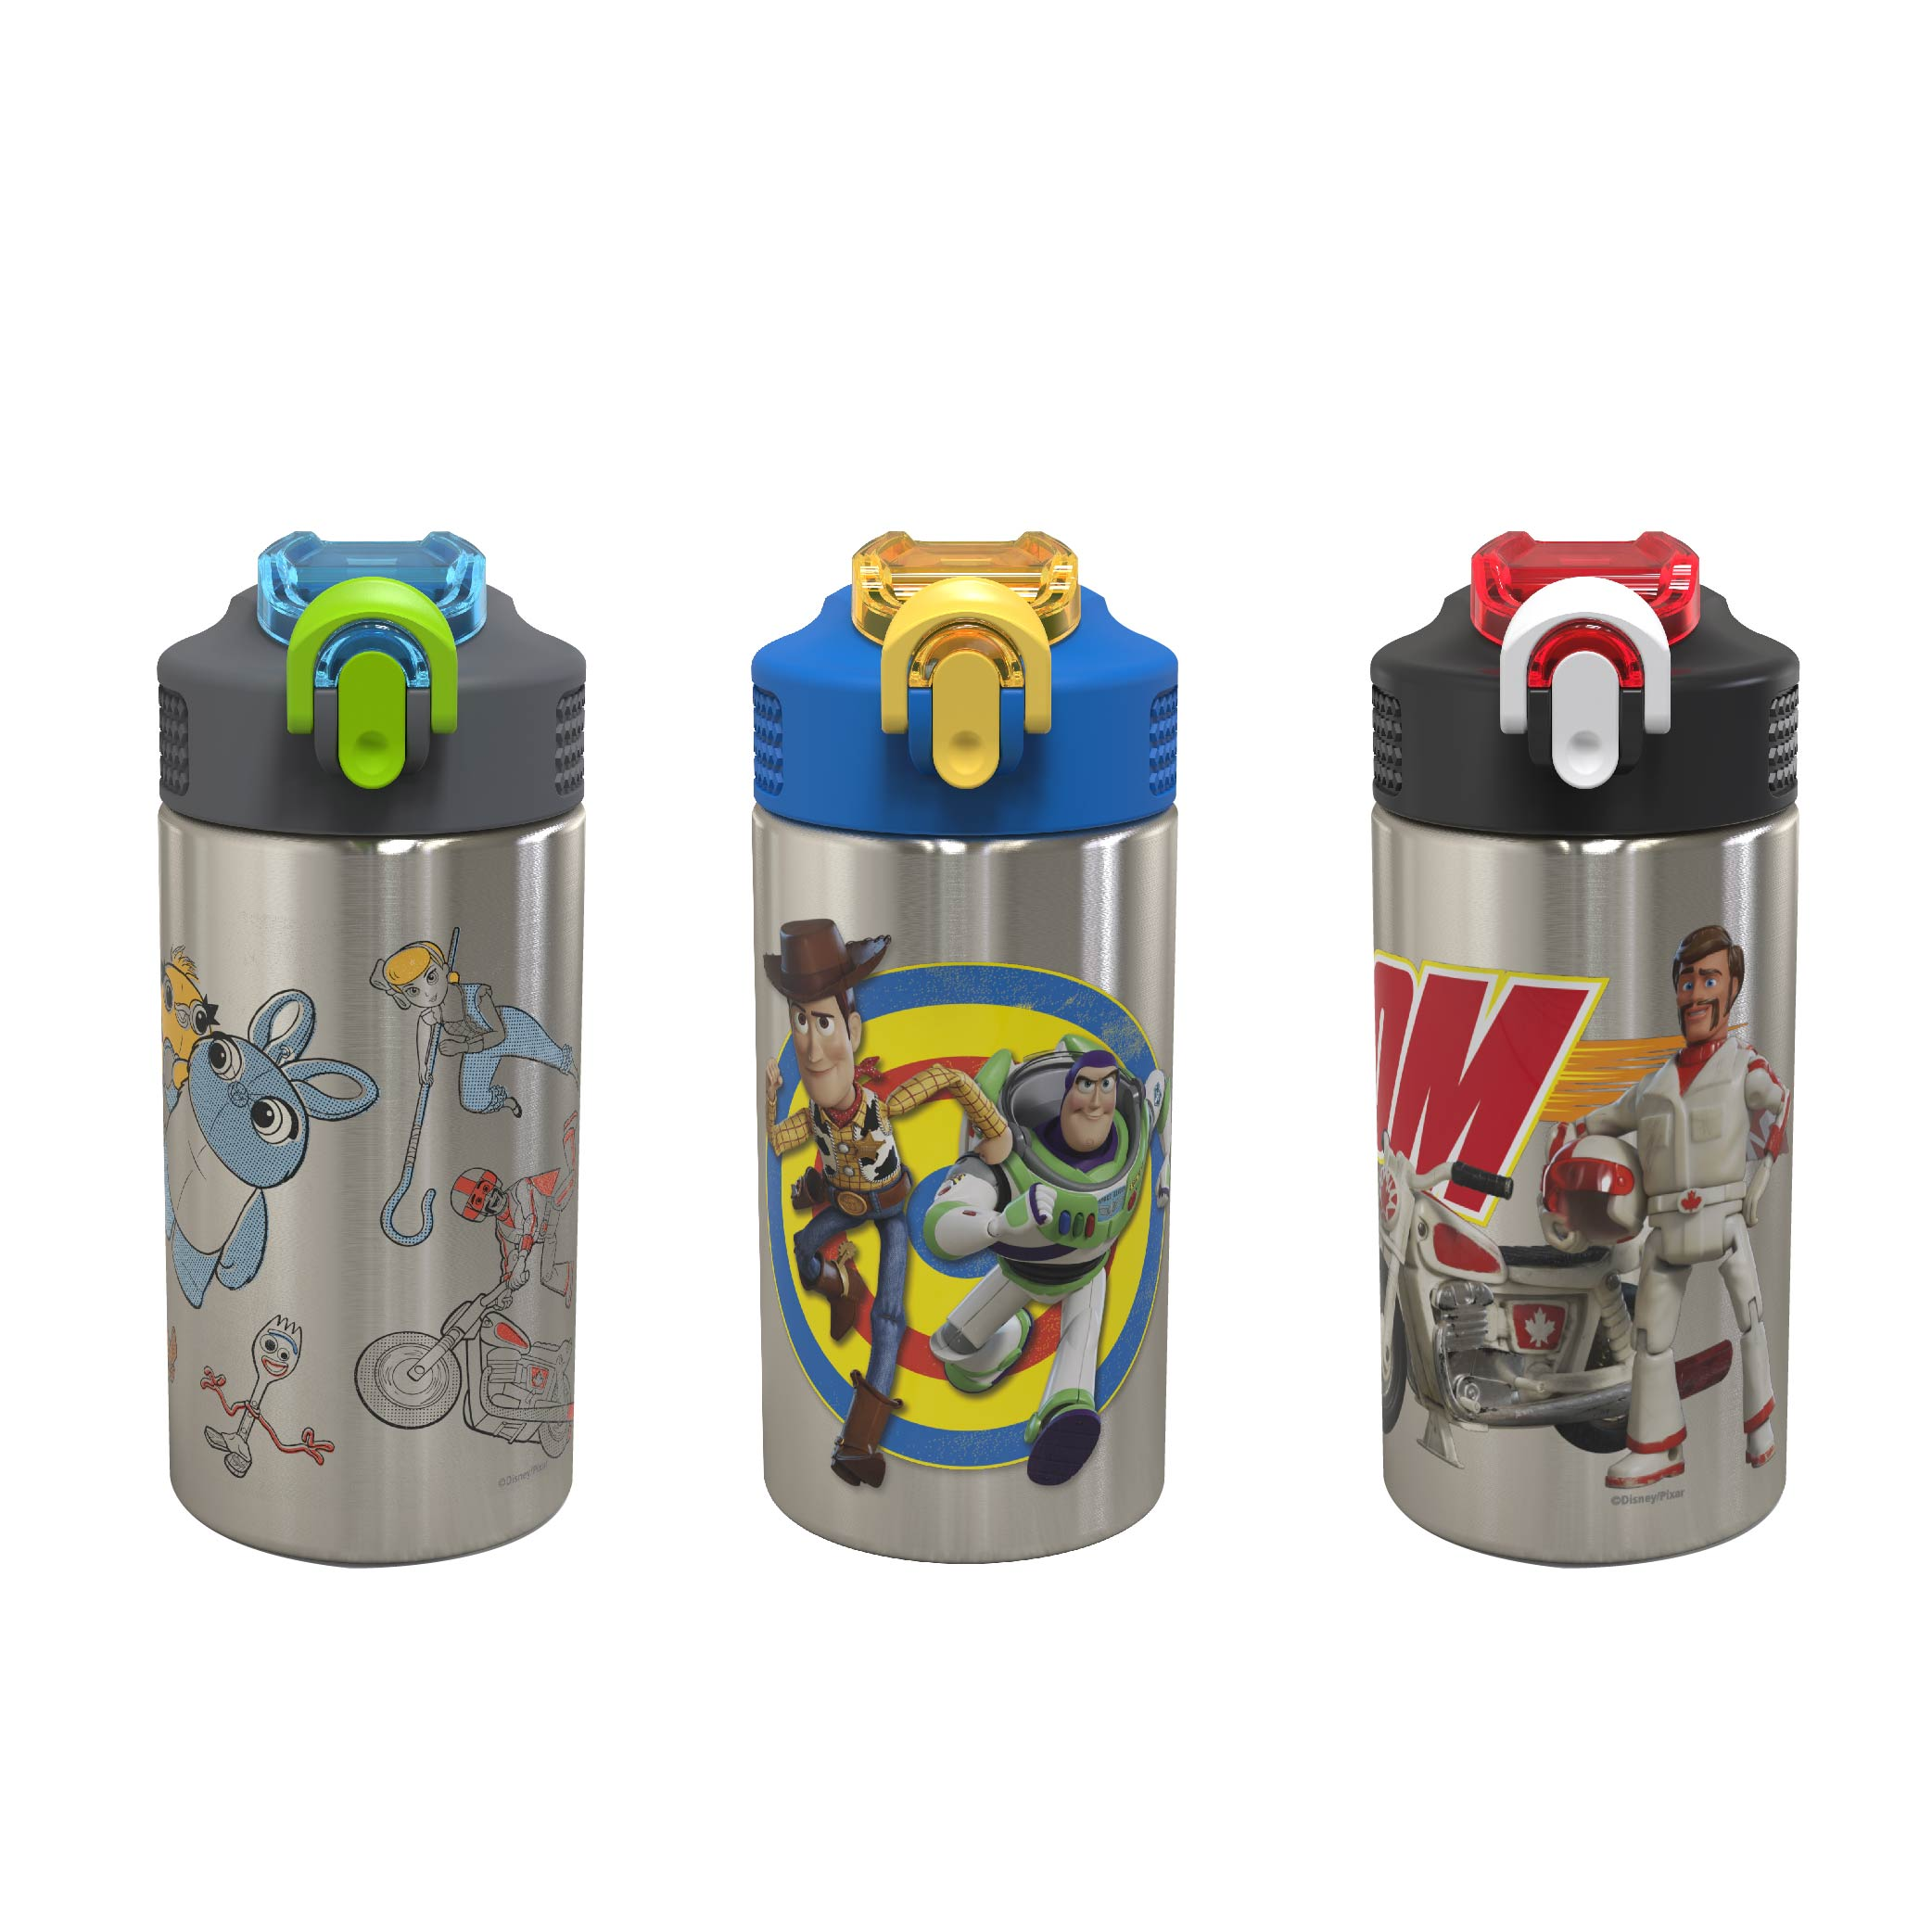 Toy Story 5 15.5 ounce Water Bottle, Duke Caboom slideshow image 4